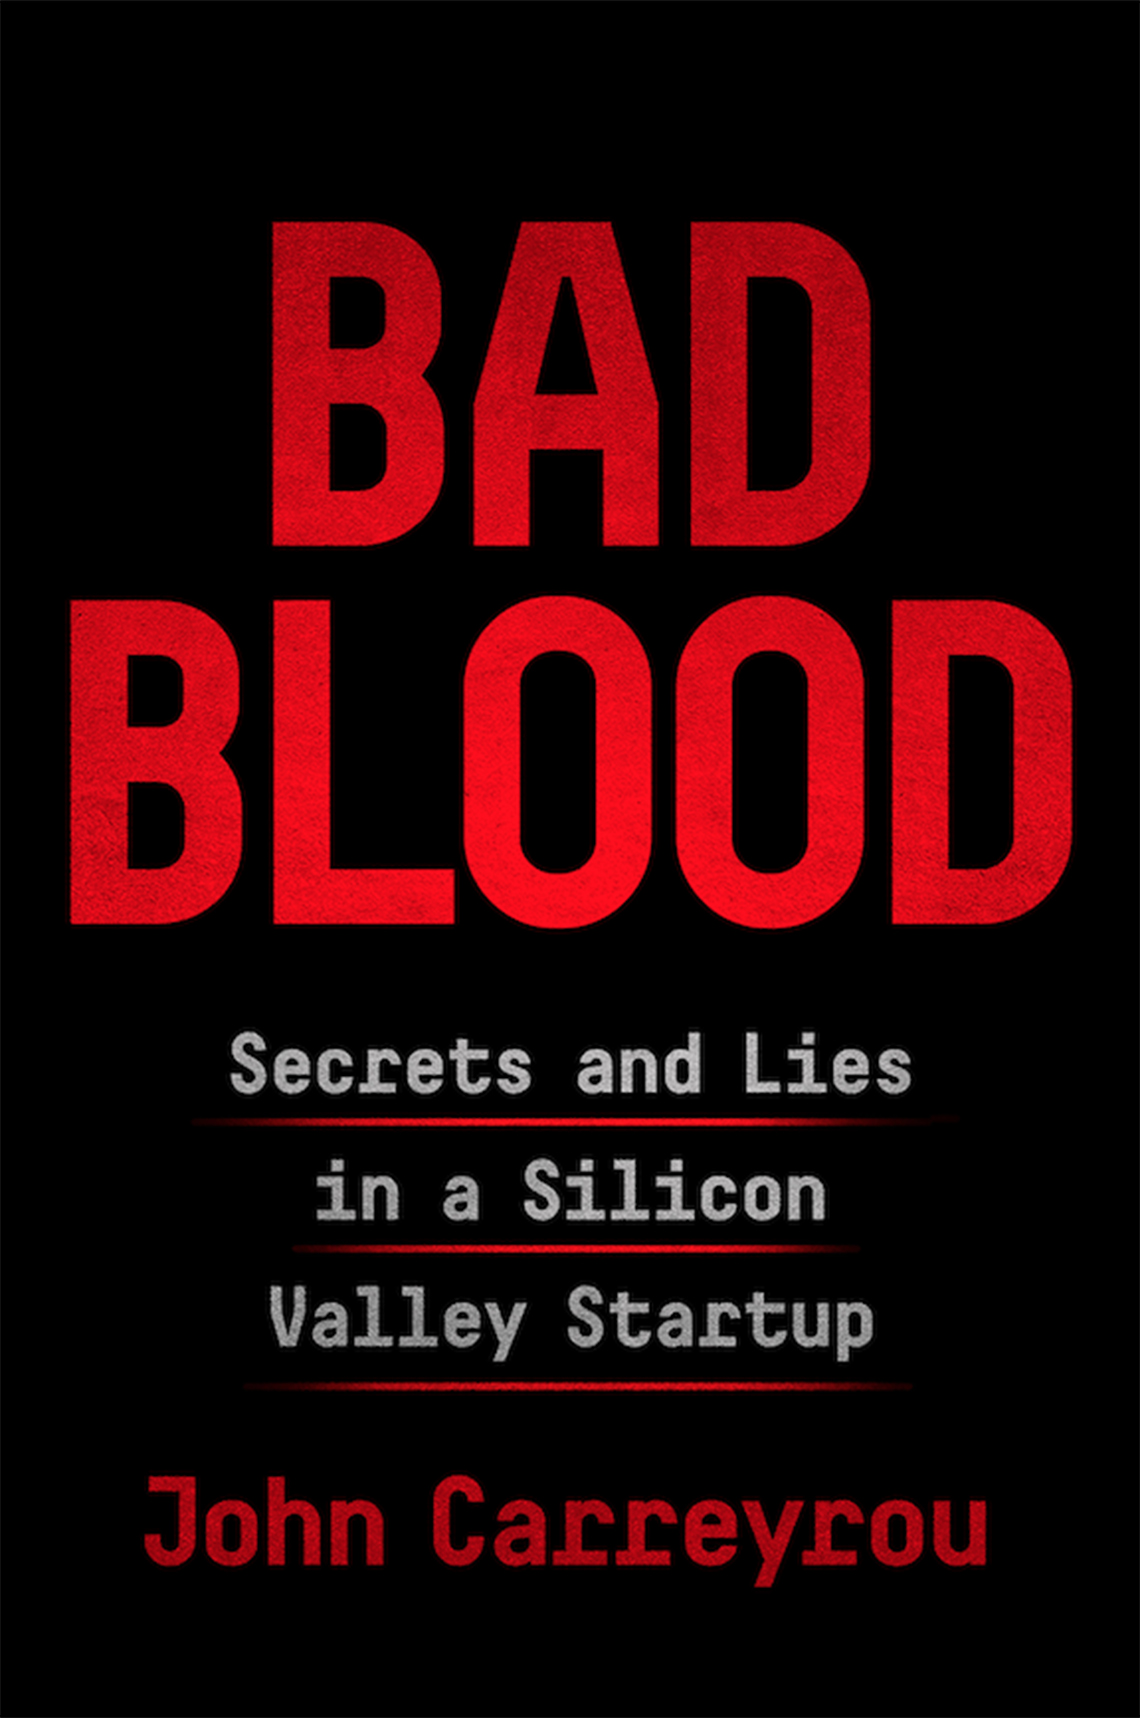 book cover, text reads: Bad Blood, Secrets and Lies in a Silicon Valley Startup, John Carreyrou